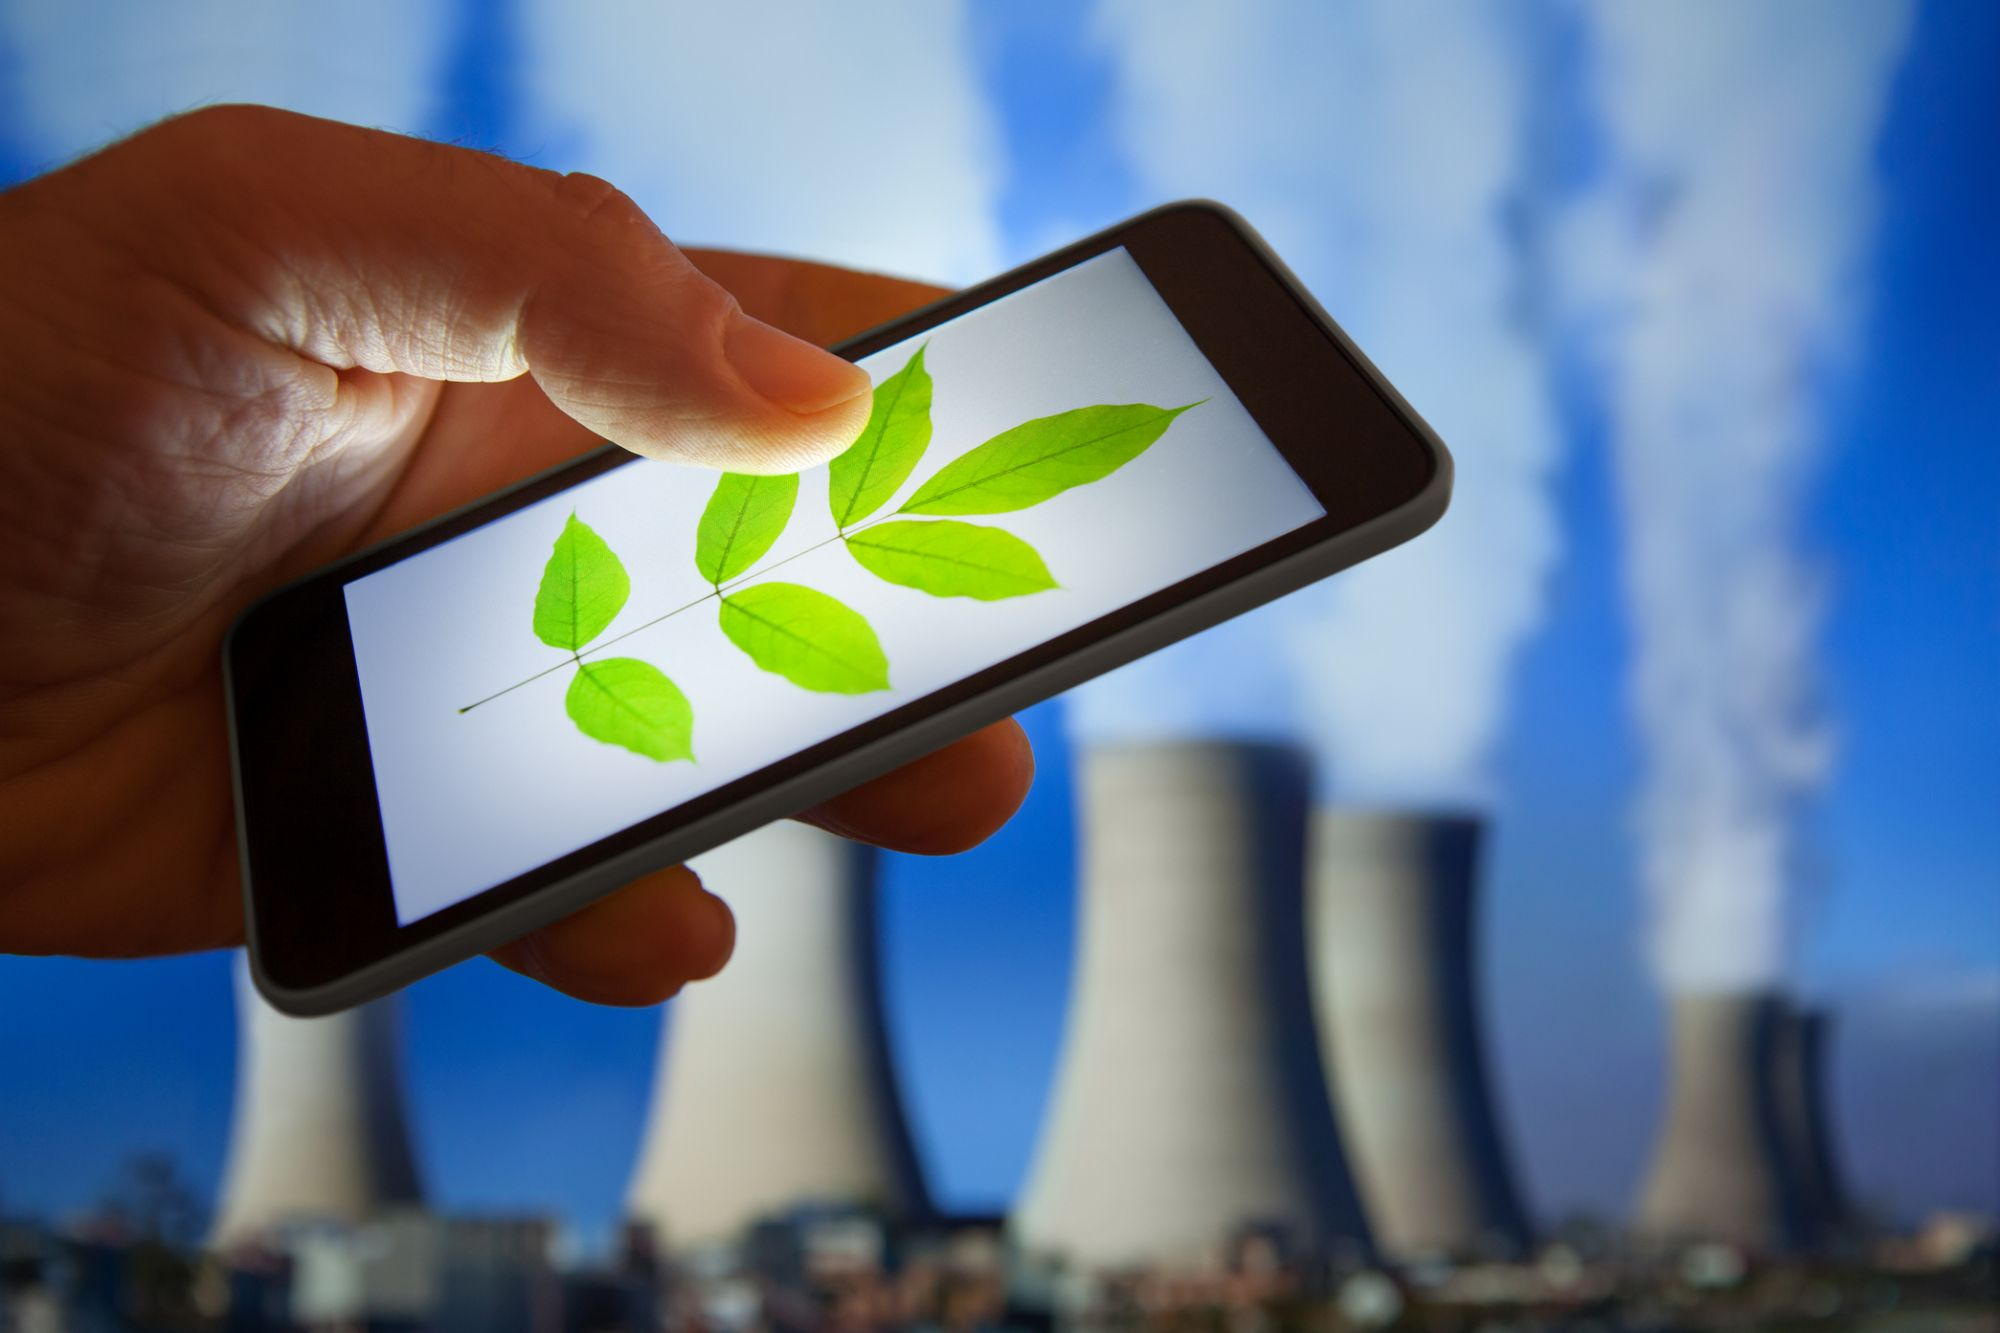 How Visionary Tech Can Help Prevent Climate Change